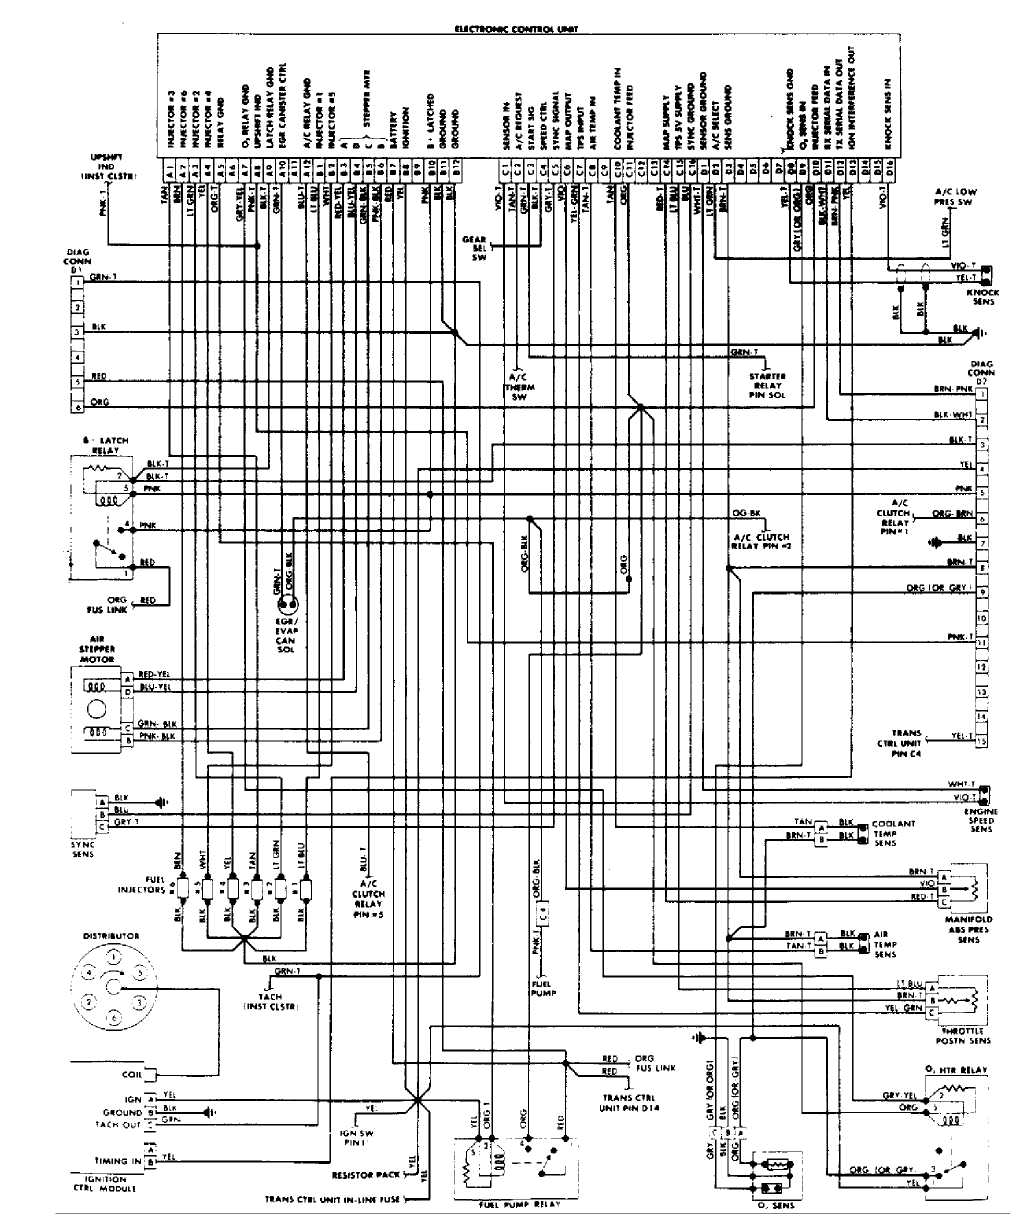 hight resolution of cat c13 wiring diagram wiring diagram origin cat c12 wiring diagram cat c13 wiring diagram